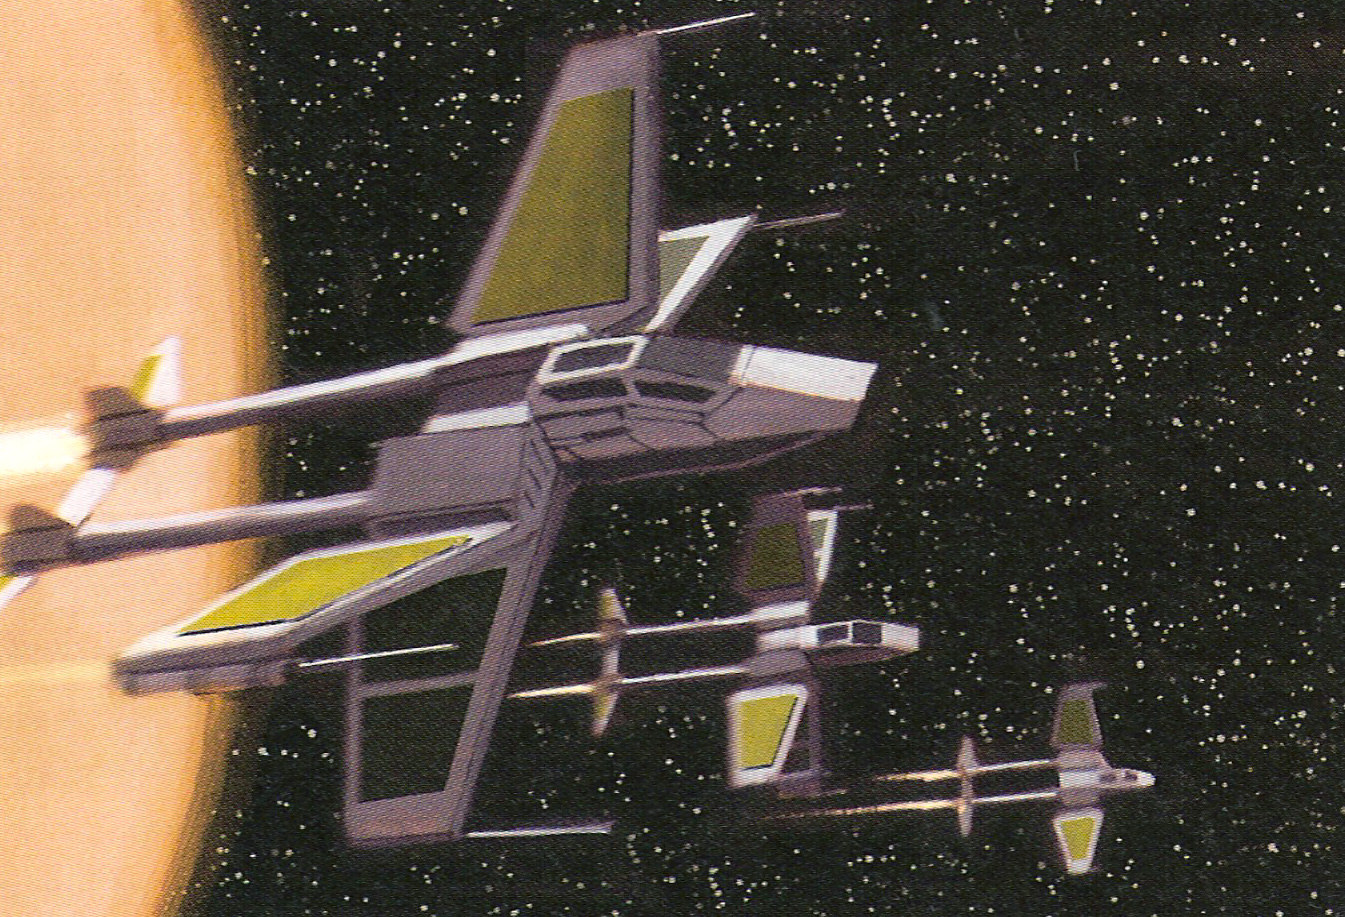 X 83 Twintail Starfighter Wookieepedia Fandom Powered By Wikia How To Fold An Origami Naboo And Other Starships From Star